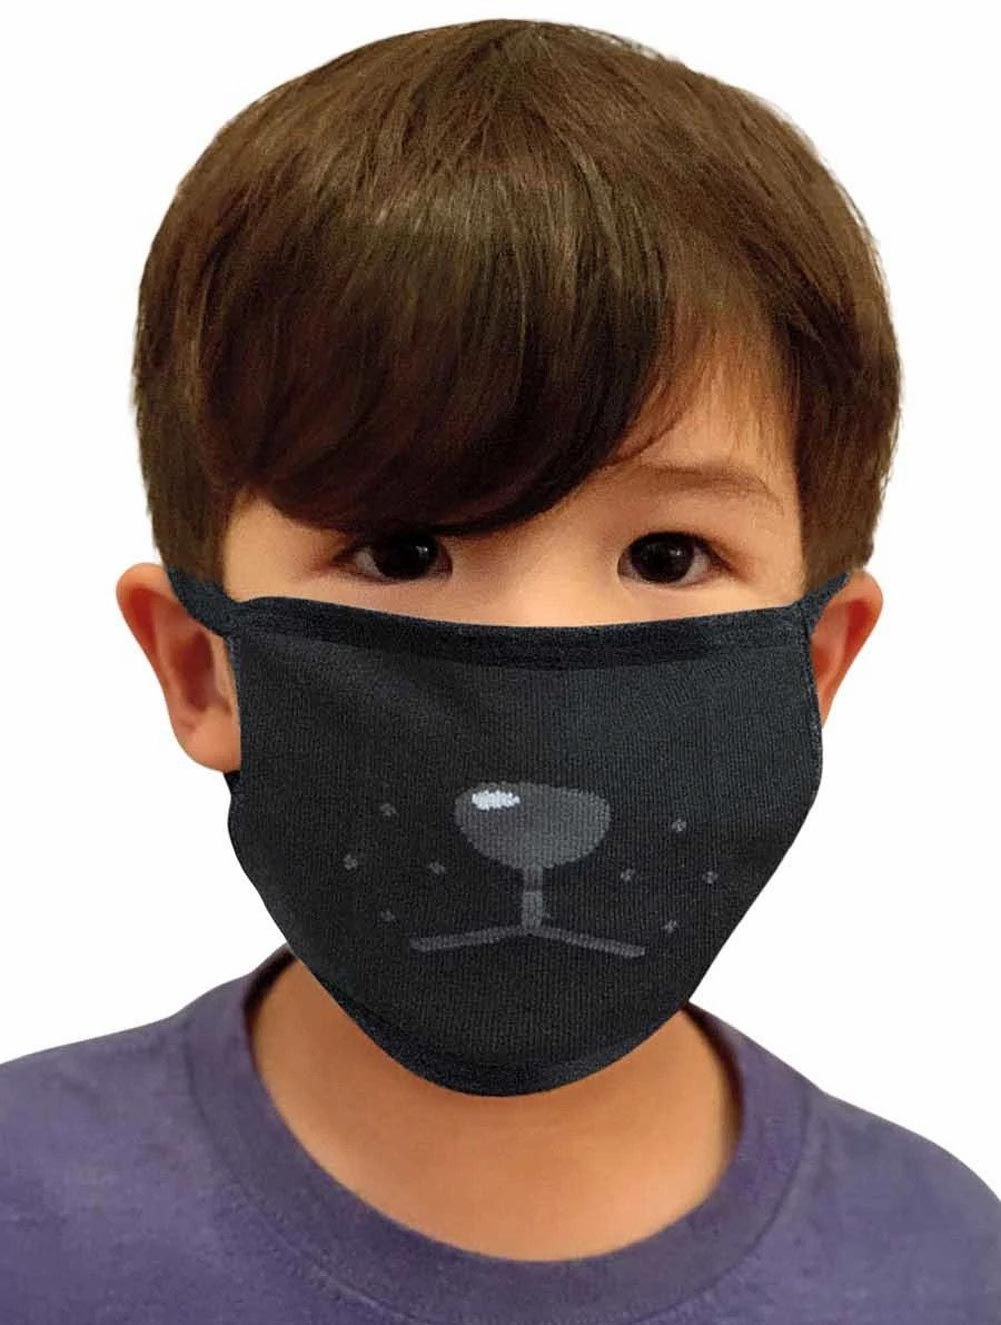 Children's Reusable Cloth Fashion Mask (1-pc)